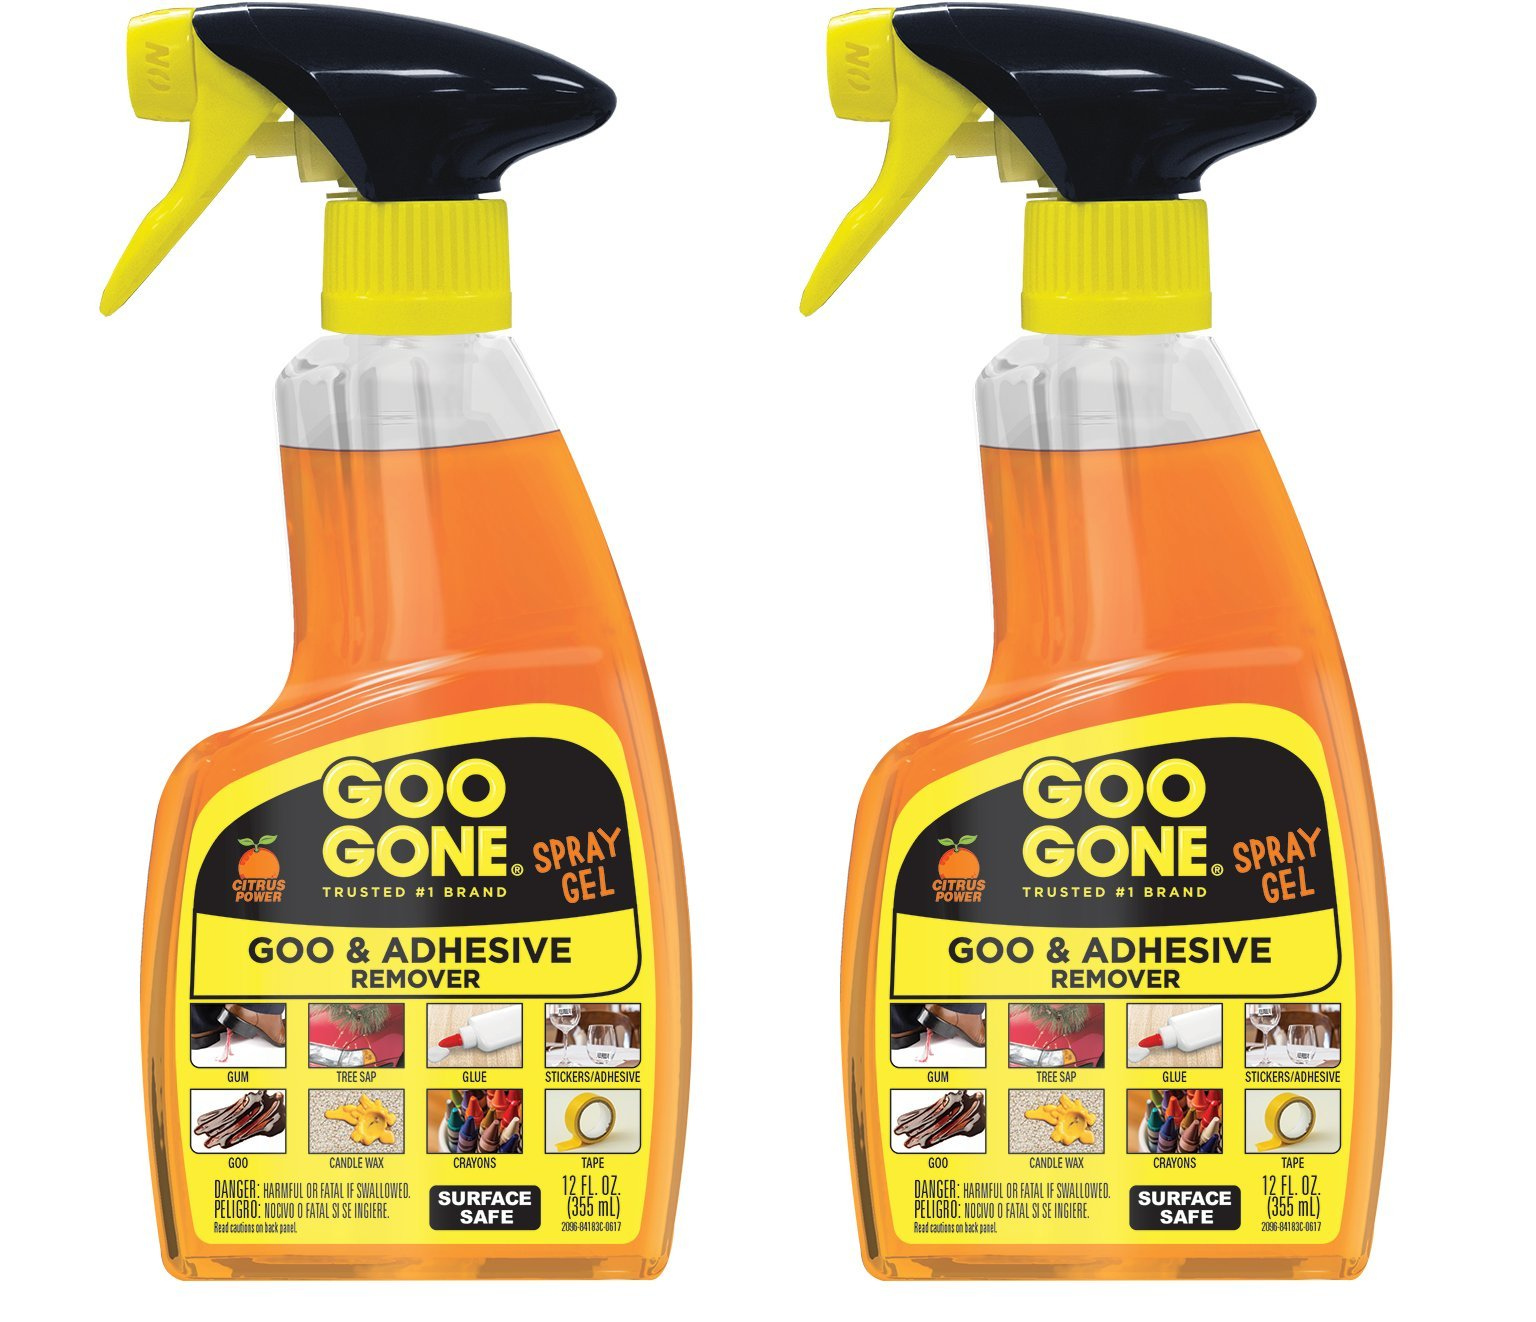 Goo Gone Adhesive Remover Spray Gel - 2 Pack - Removes Chewing Gum Grease Tar Stickers